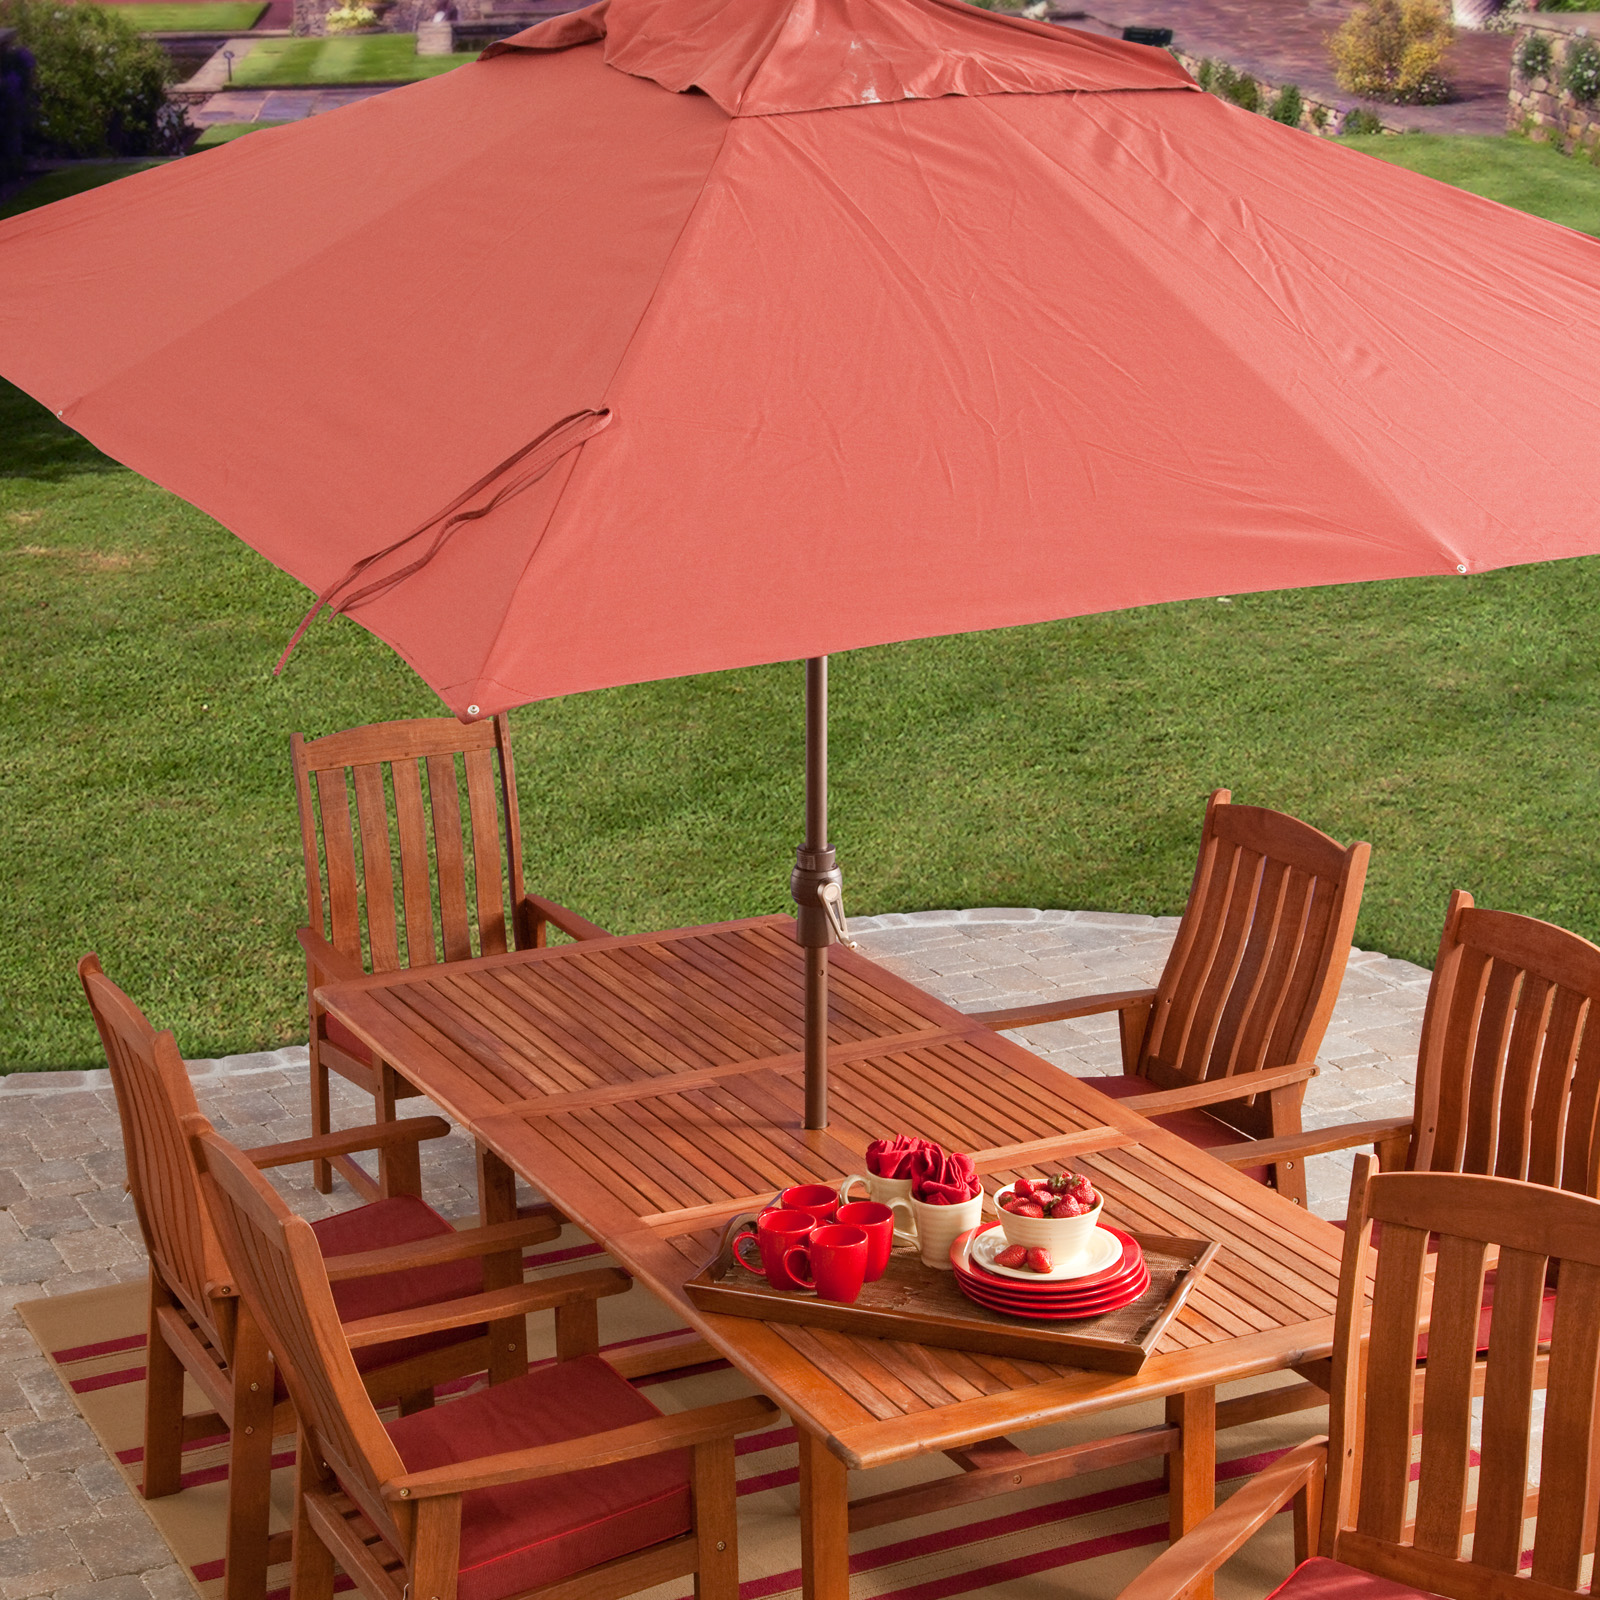 Superb Aluminum Spun Poly Rectangle Patio Umbrella | Hayneedle